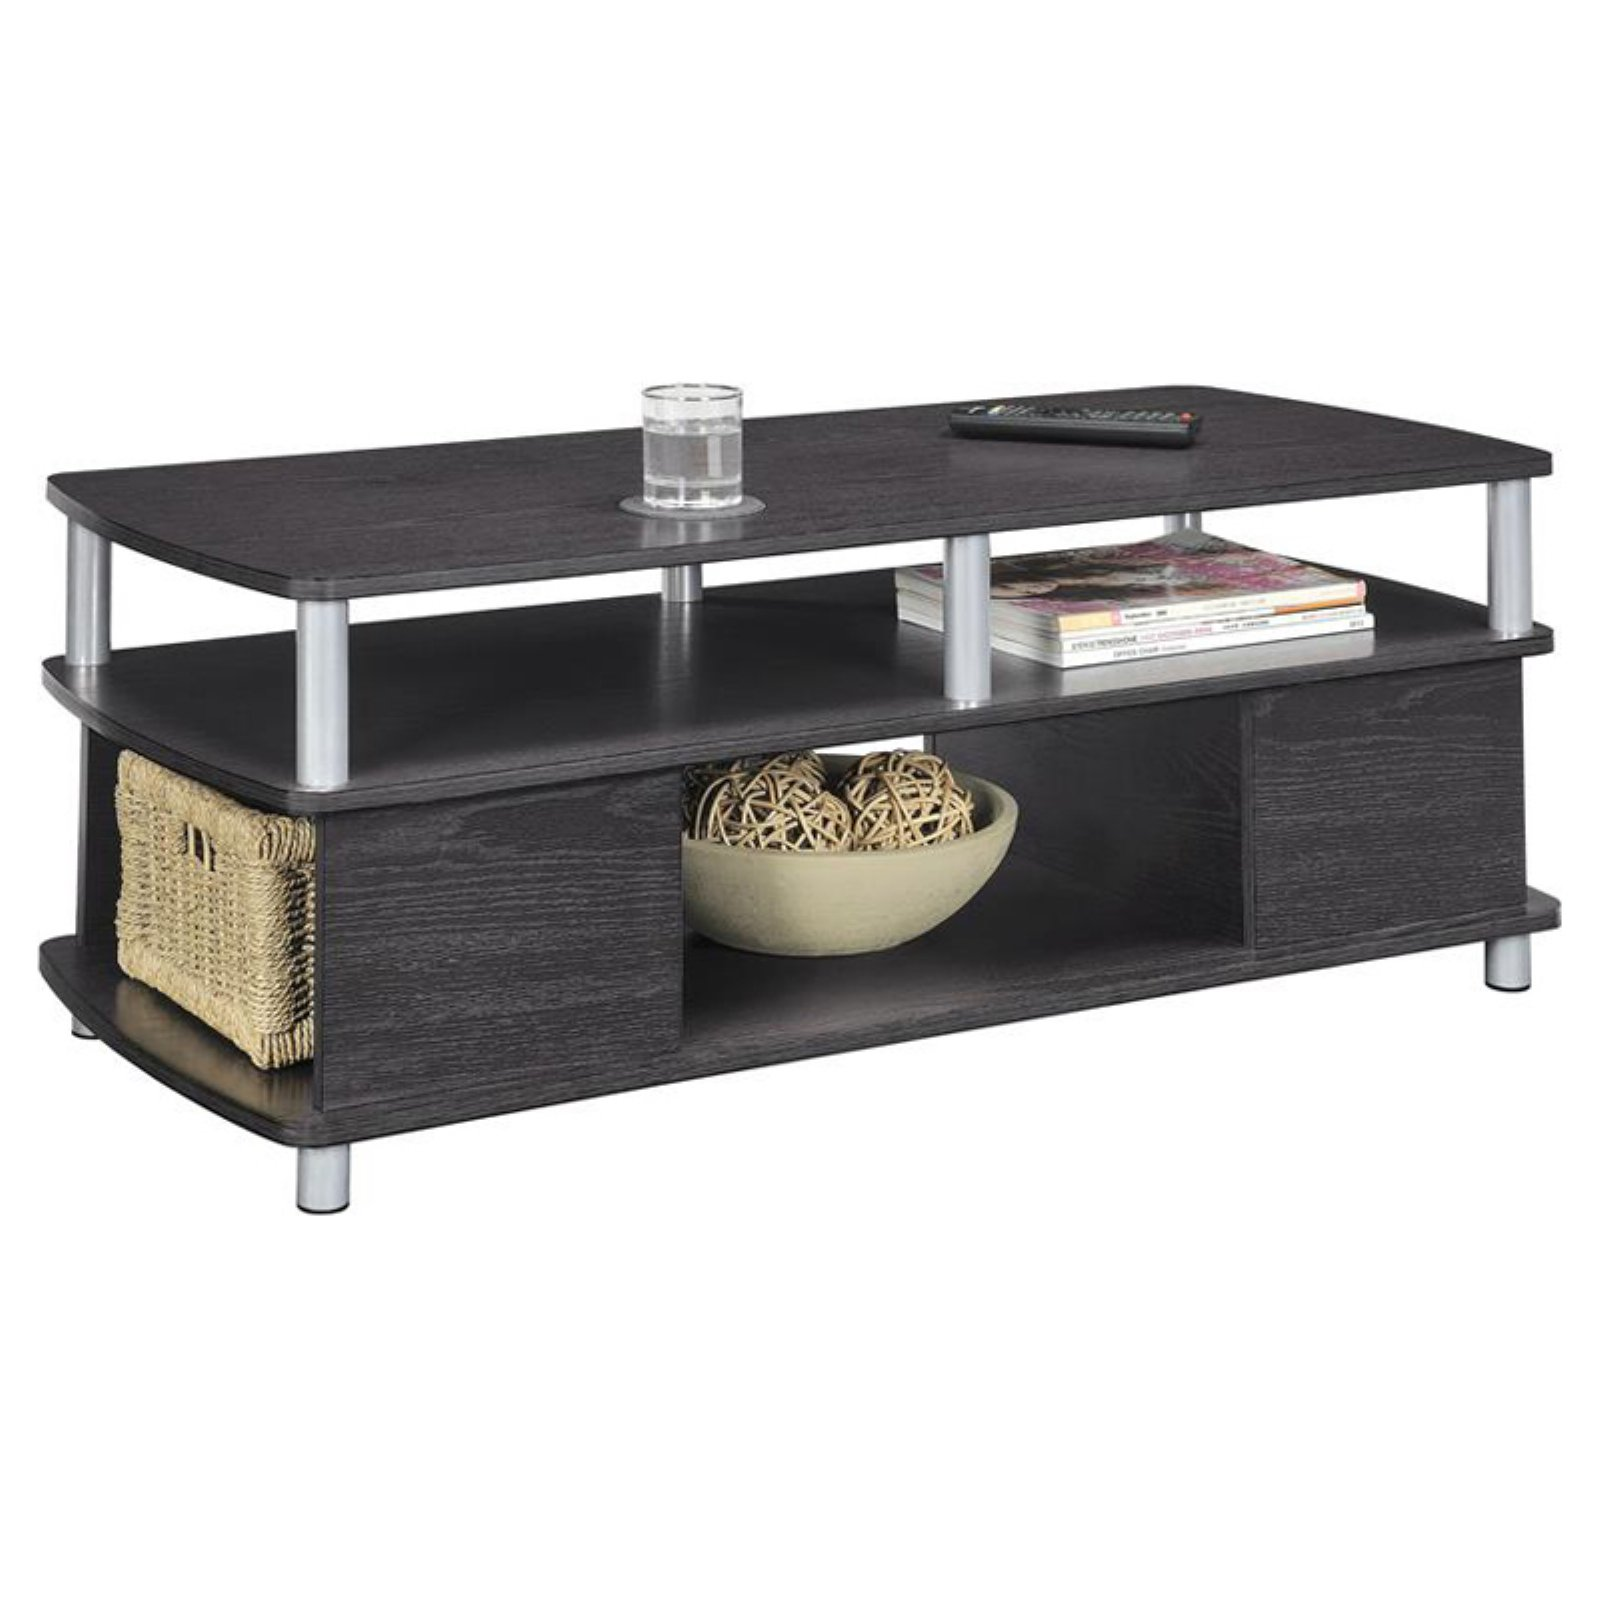 Ameriwood Home Carson Coffee Table, Espresso/Silver